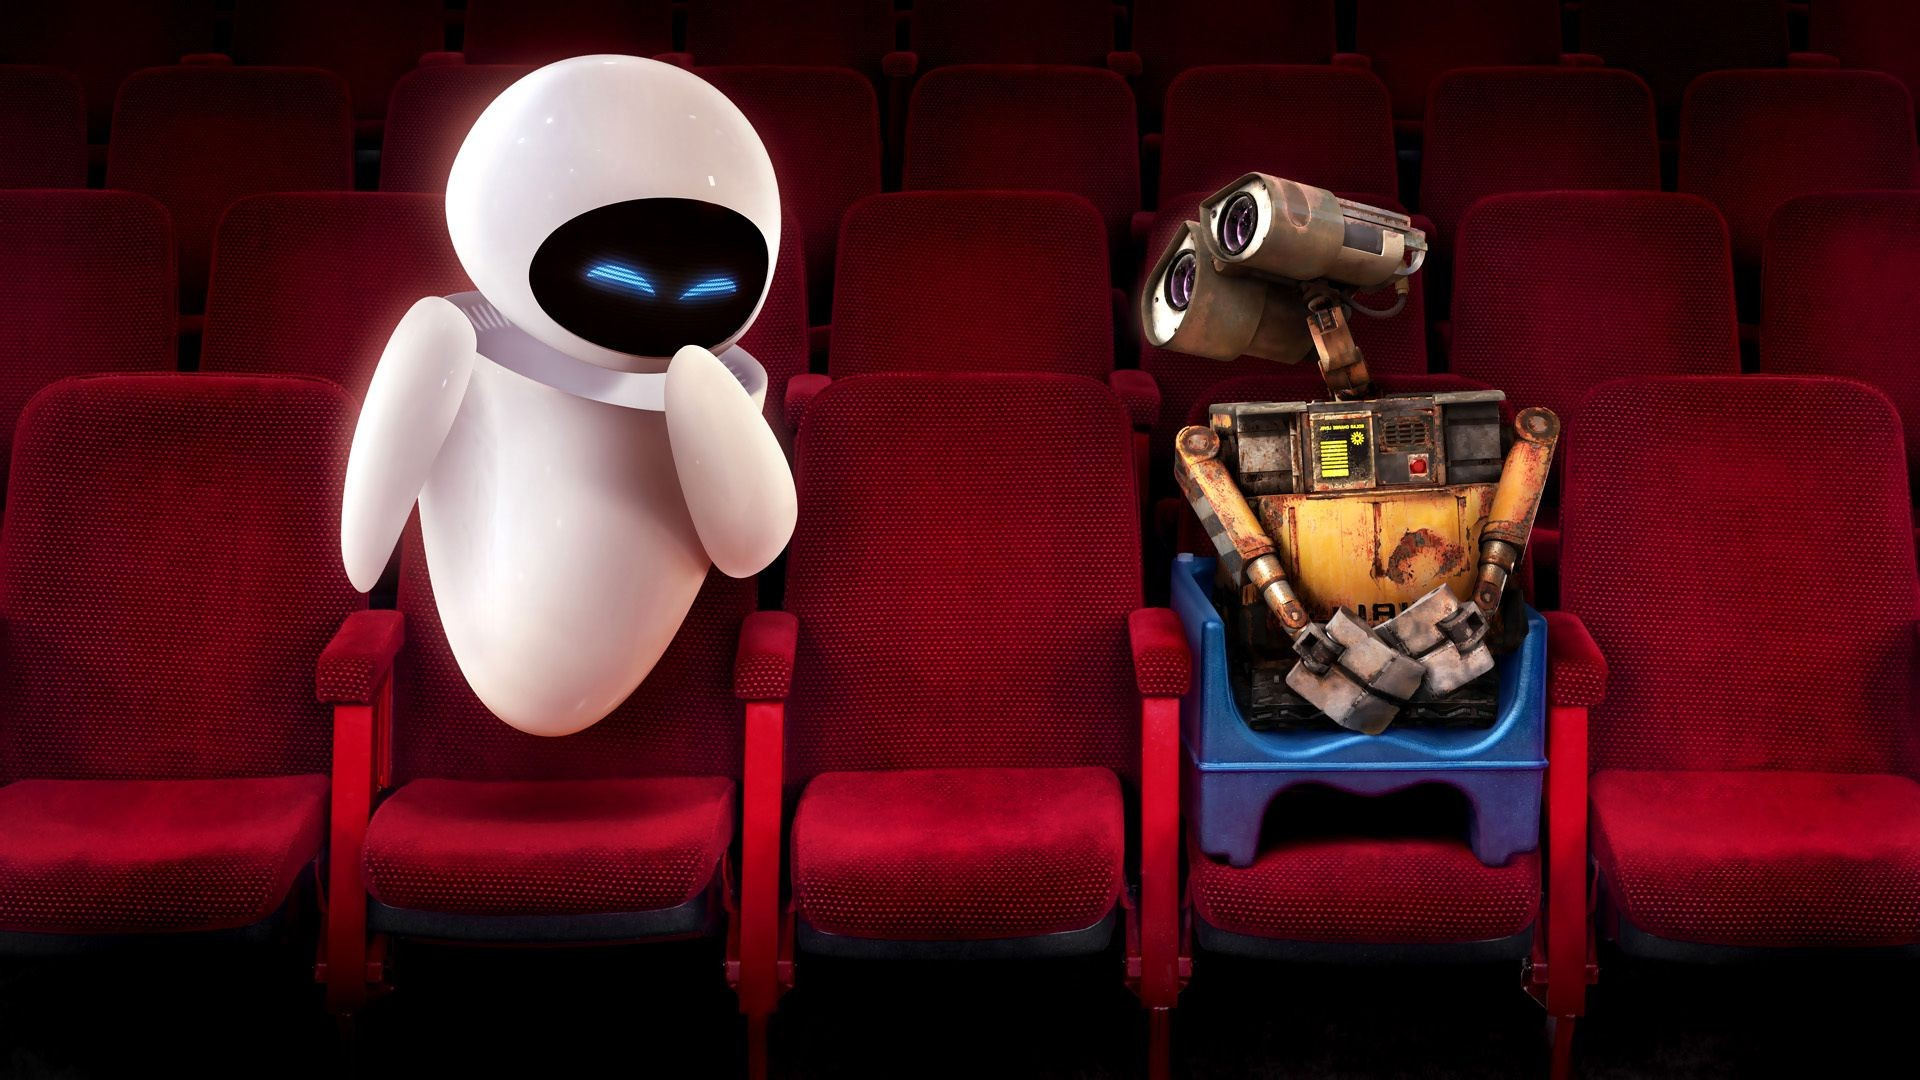 Wall-e eve cinema shy laugh red Cres